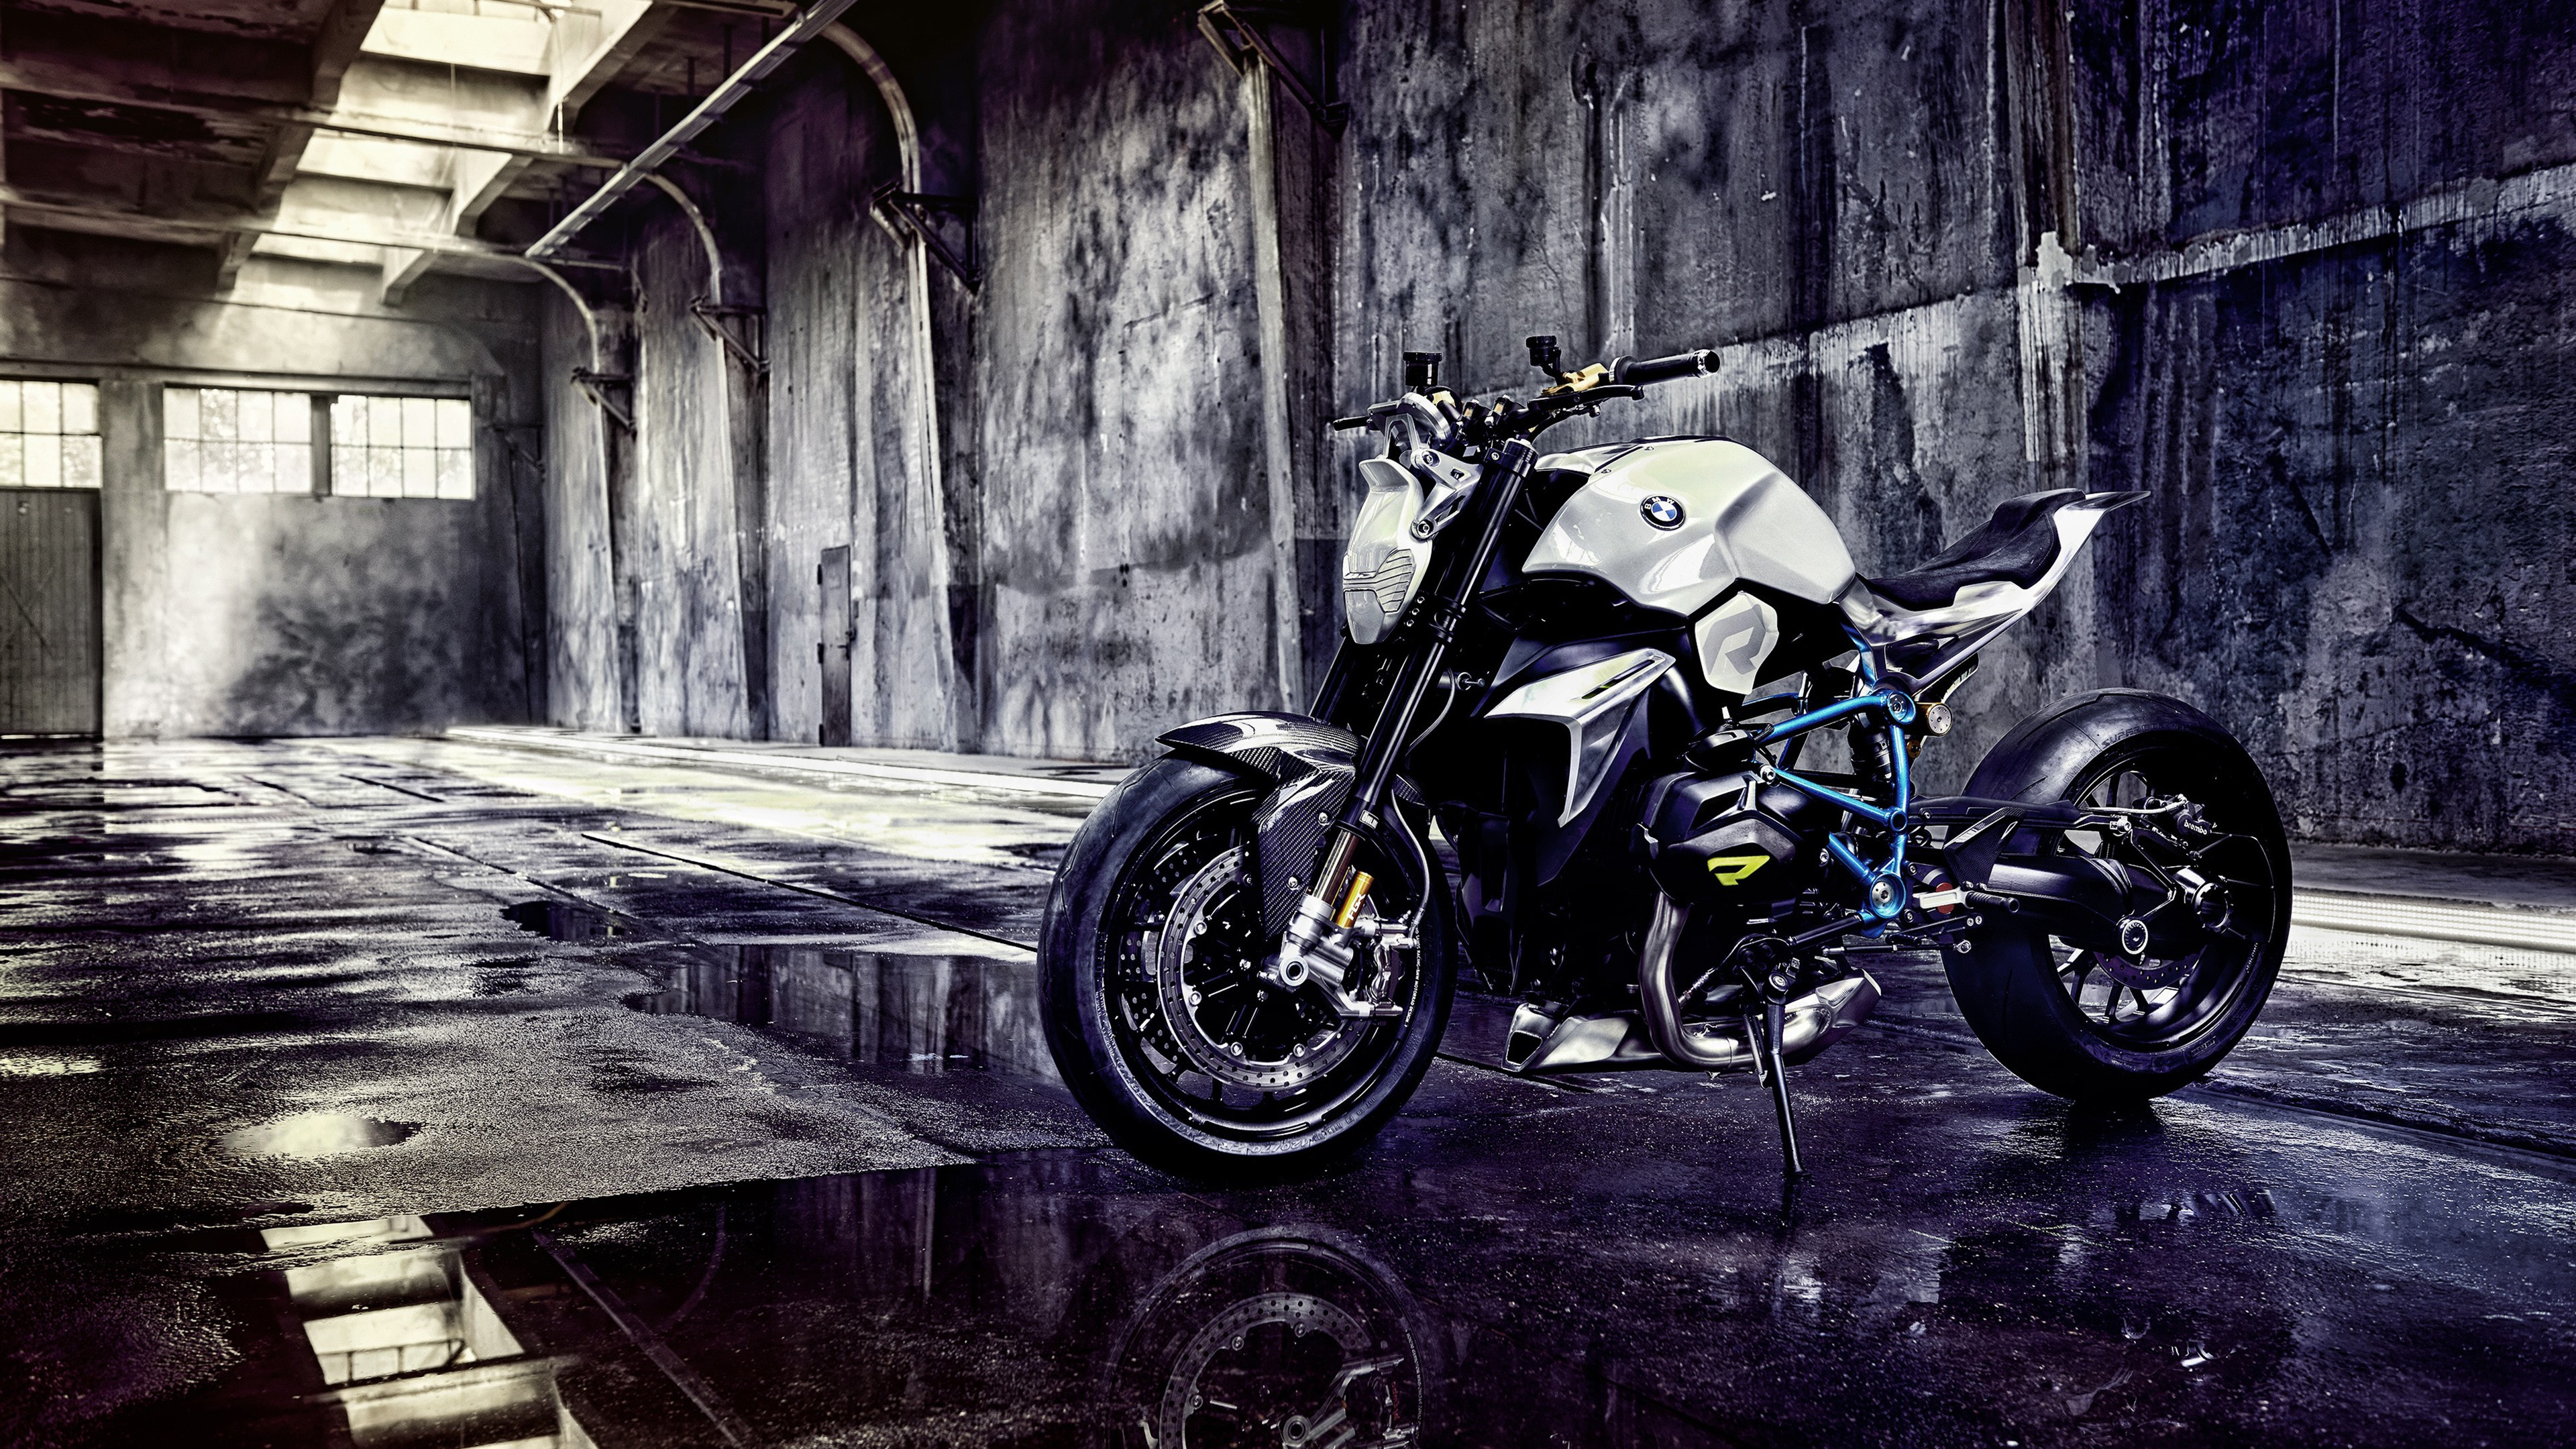 BMW Concept Roadster Motorcycle wallpaper 3840x2160